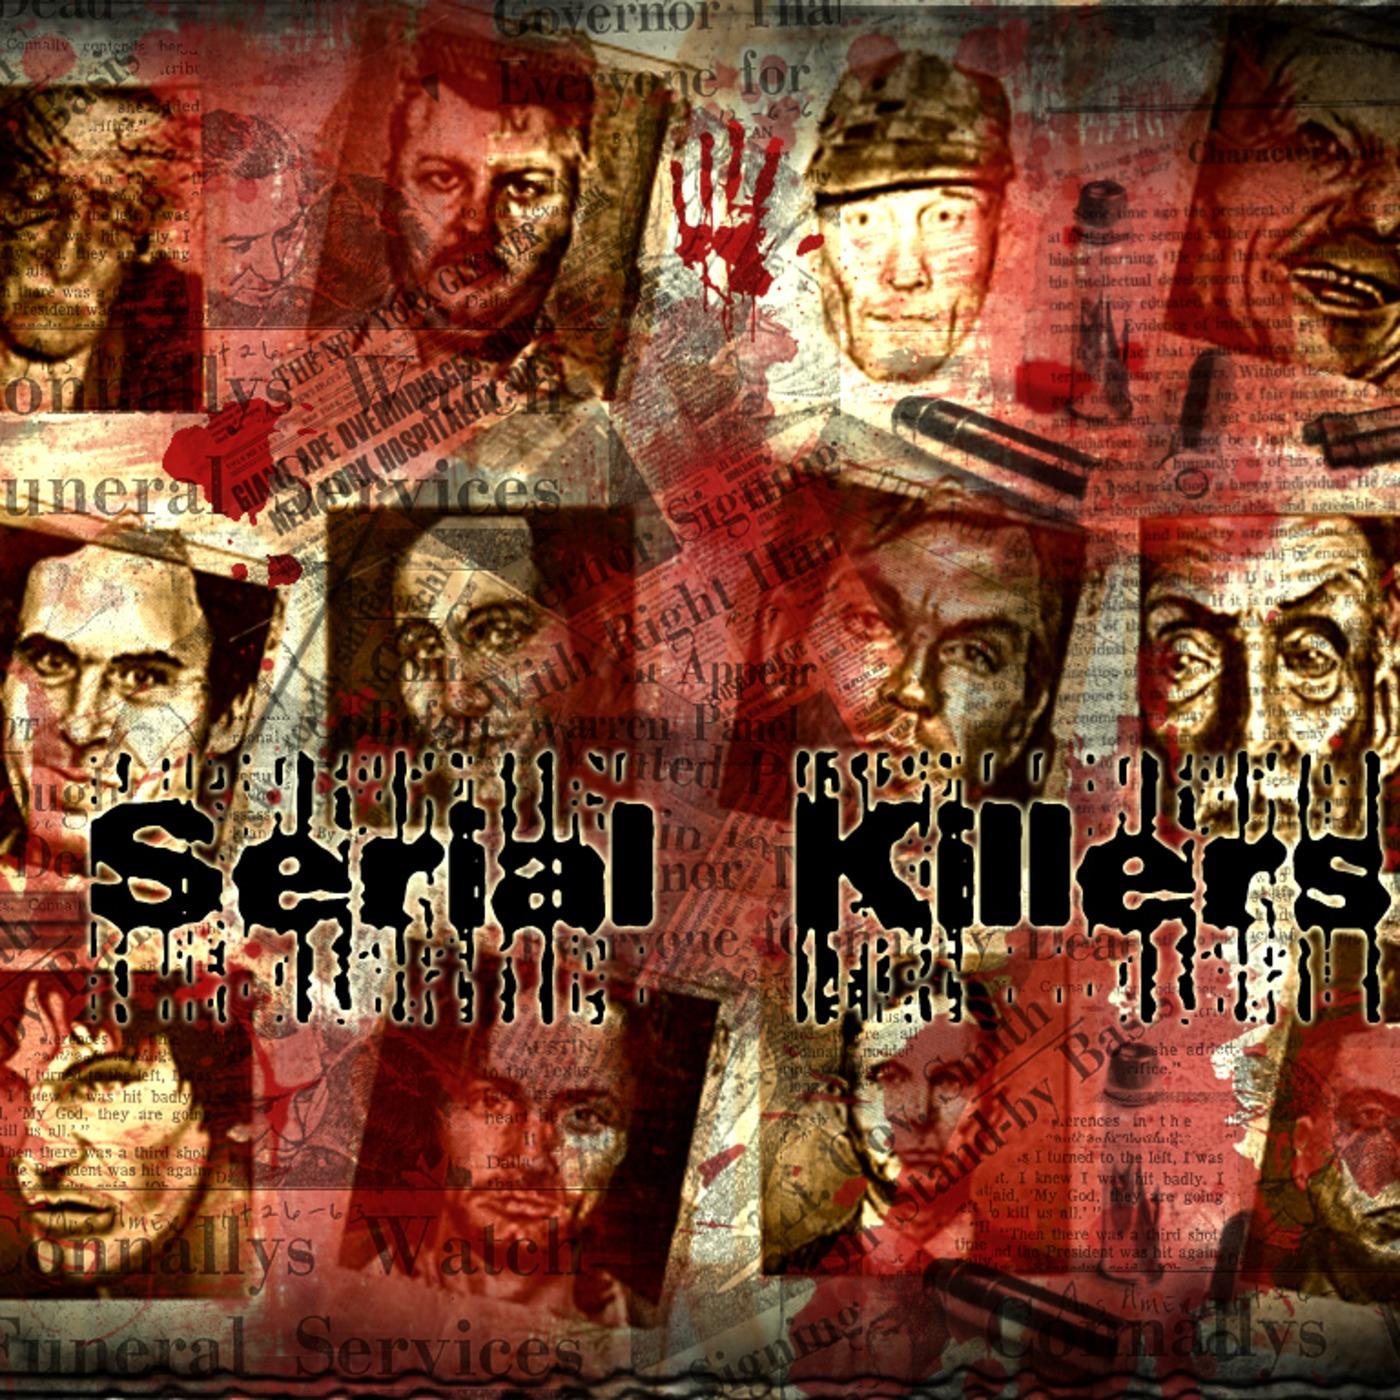 the humanisation of serial killers